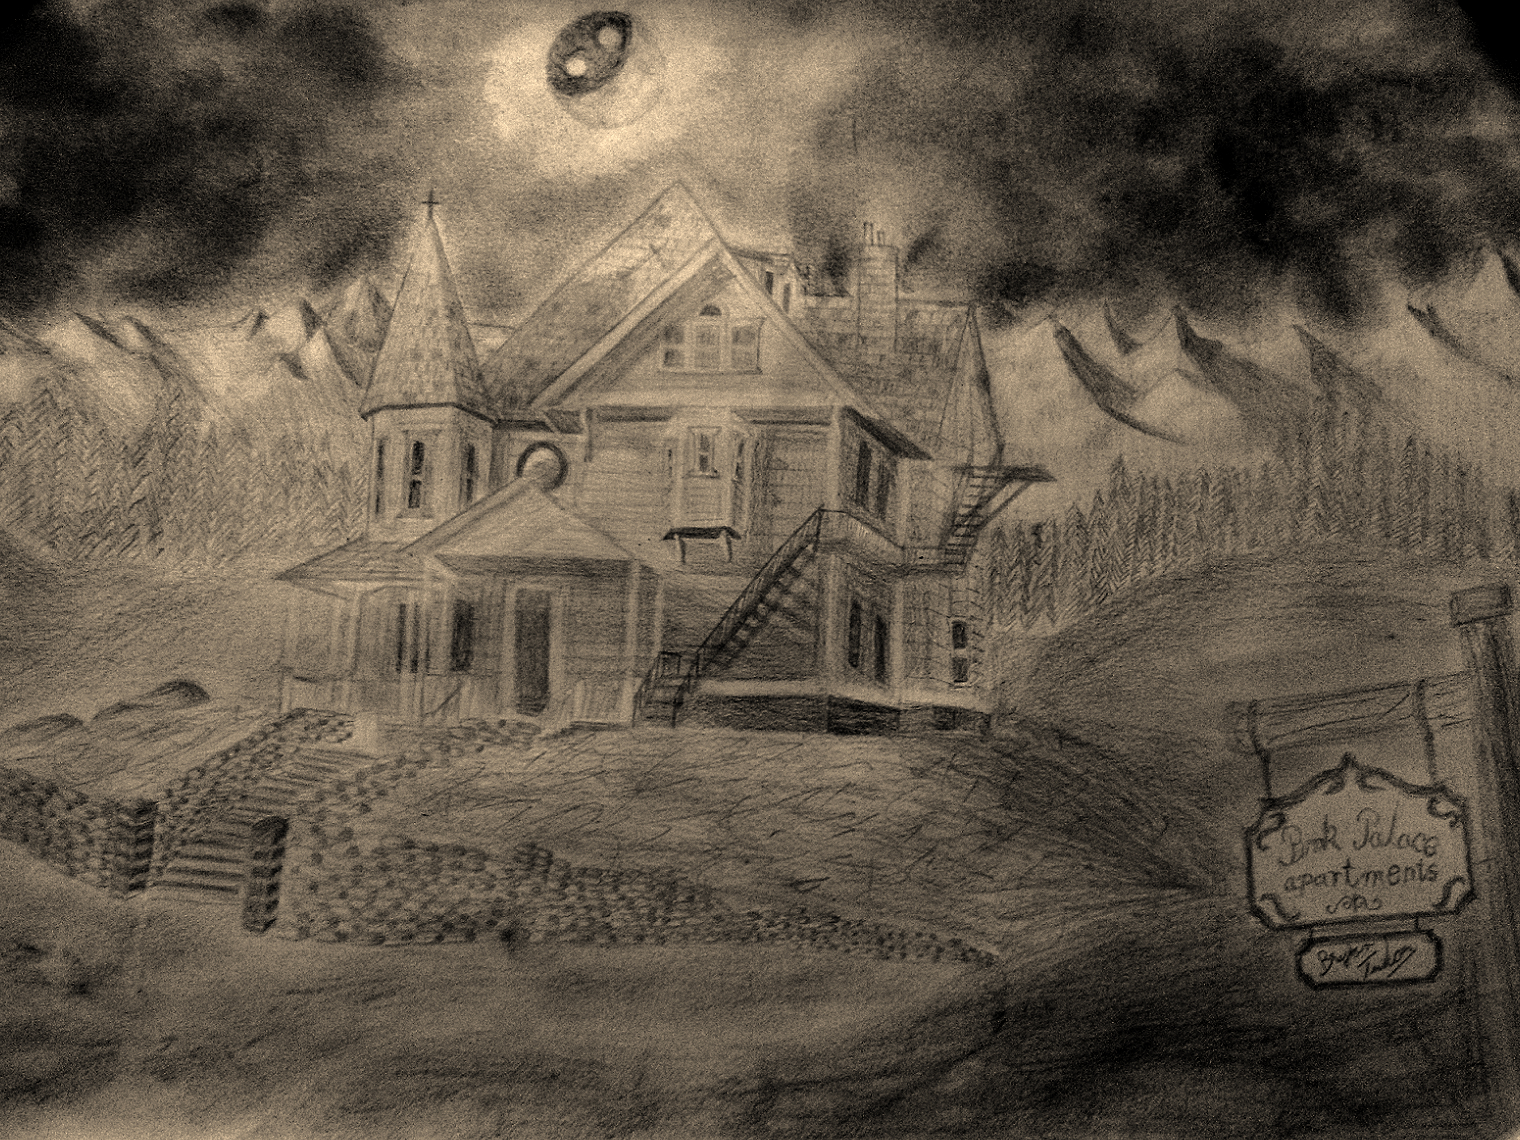 Coraline S House Drawing By Thriftycomic On Deviantart